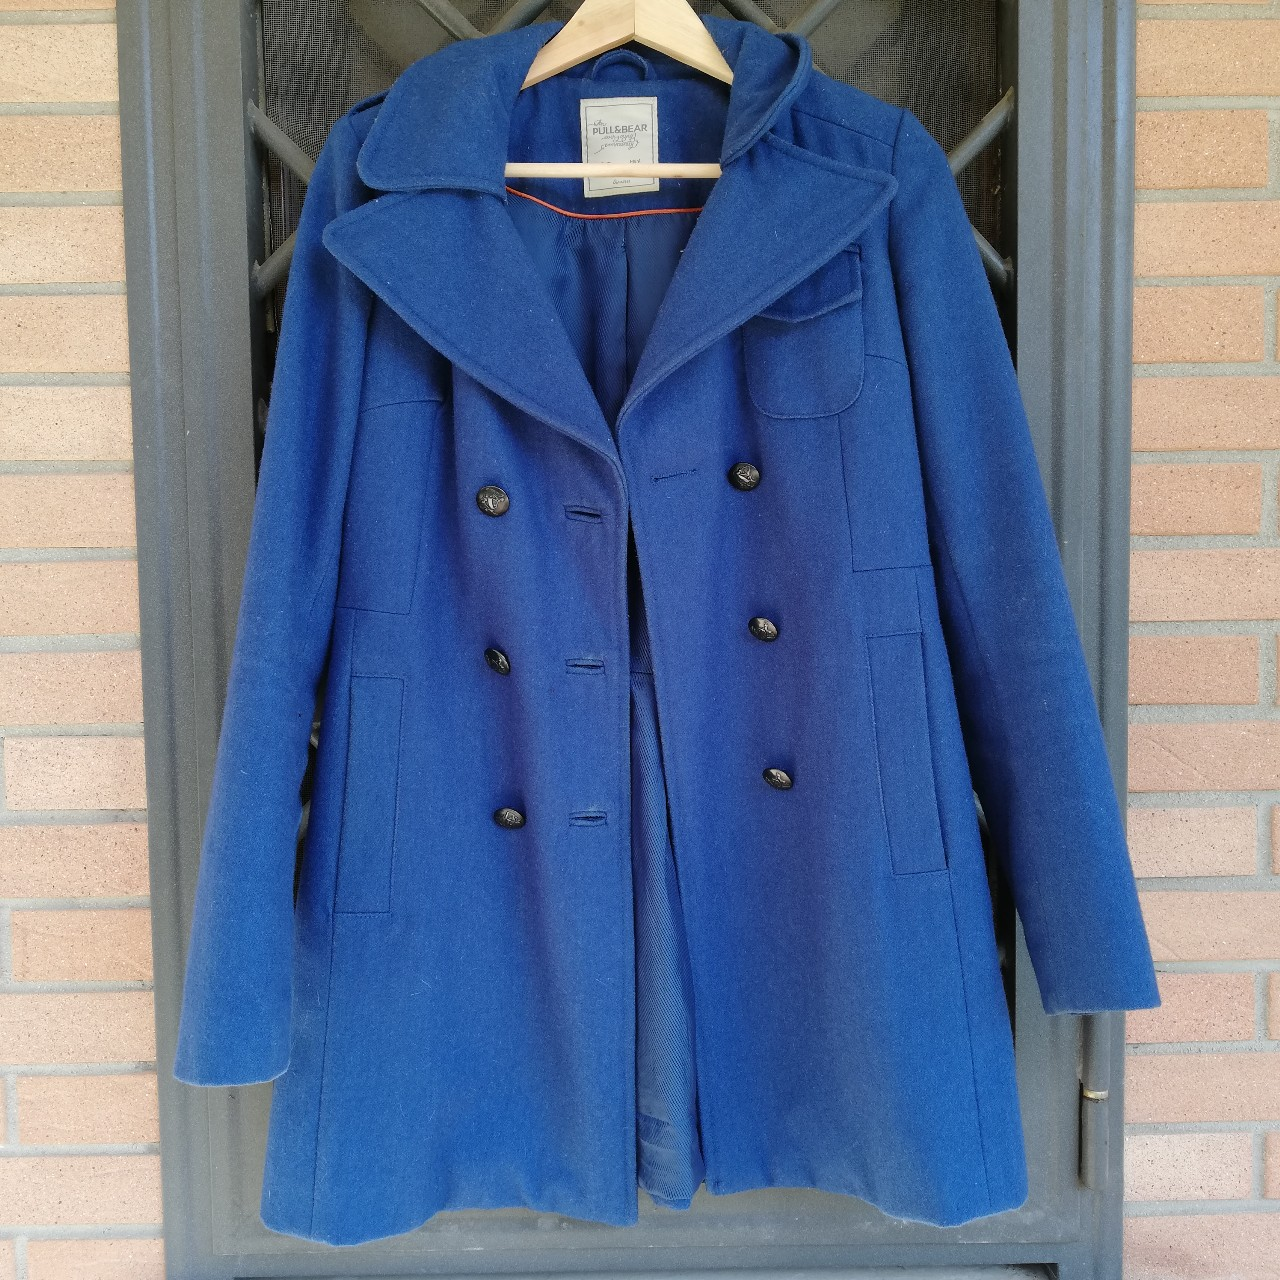 detailed look 916c3 9523d Bellissimo cappotto blu elettrico pull&bear, taglia... - Depop